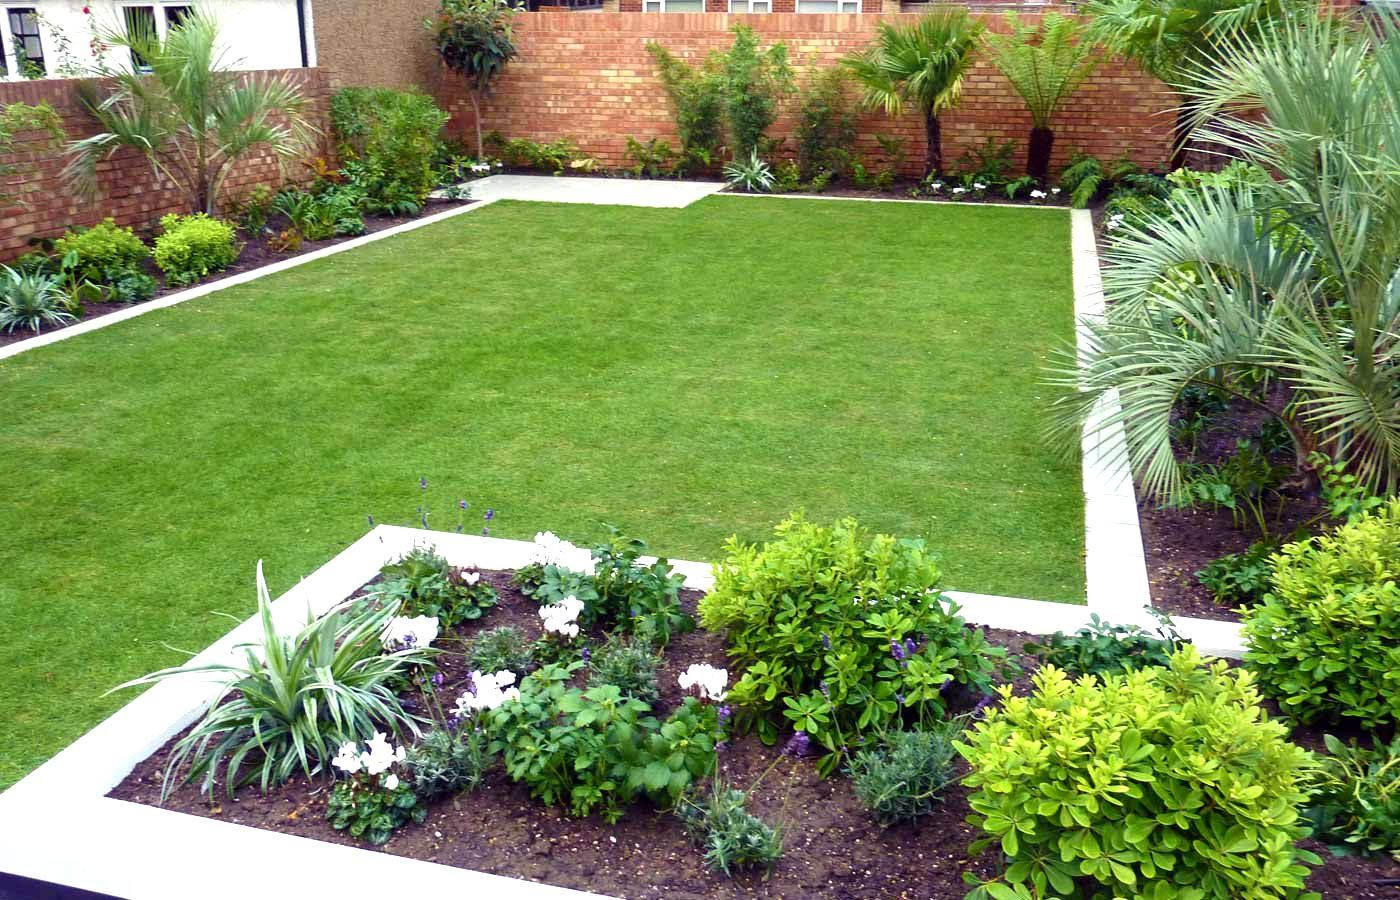 Simple garden designs no fret small garden design for Landscape layout ideas